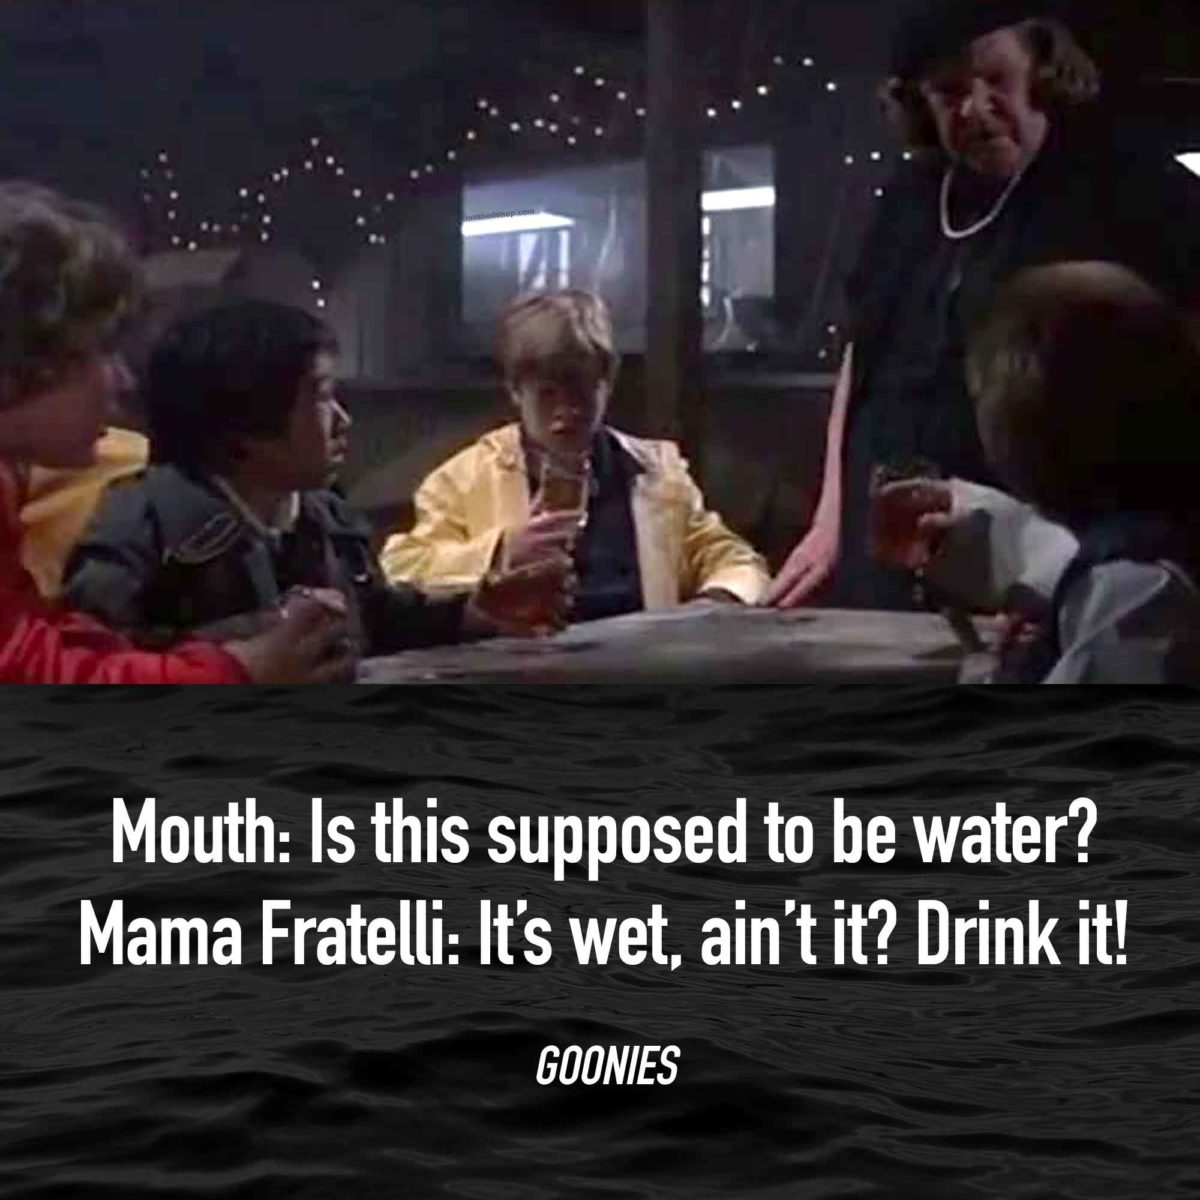 Quotes From Goonies - It's wet, ain't it? Drink it!